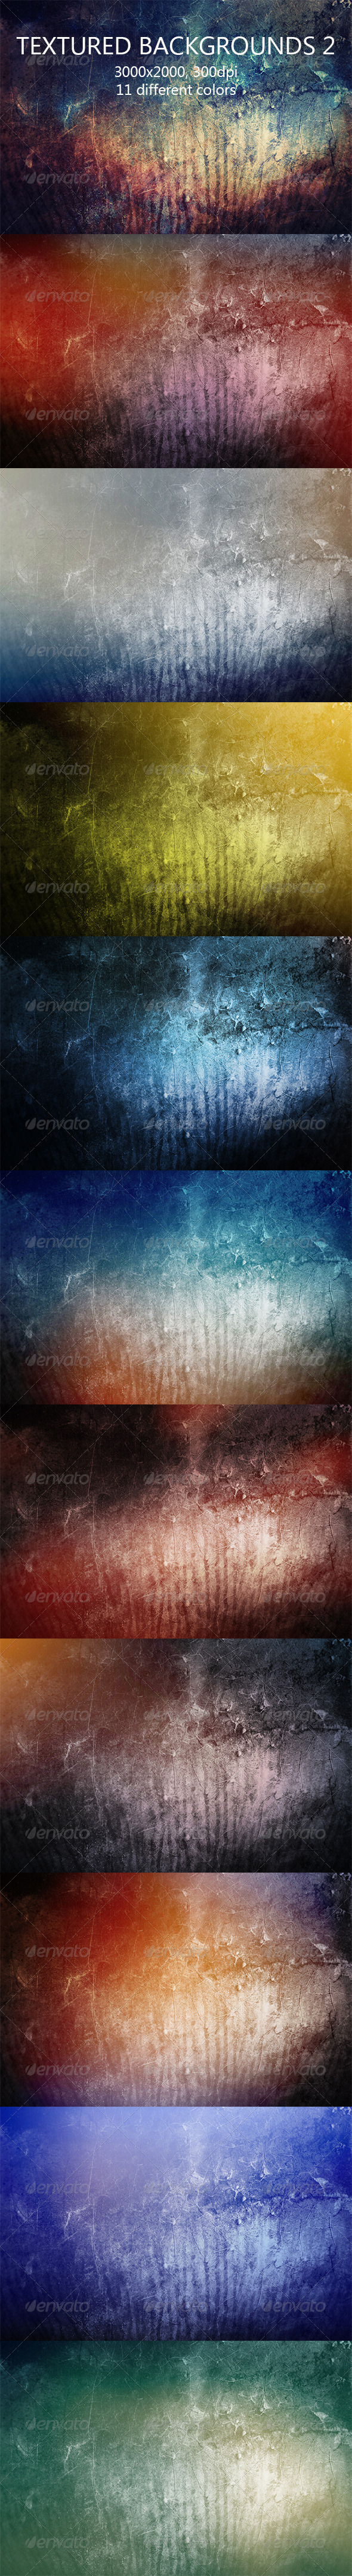 GraphicRiver Textured Backgrounds 2 8060153